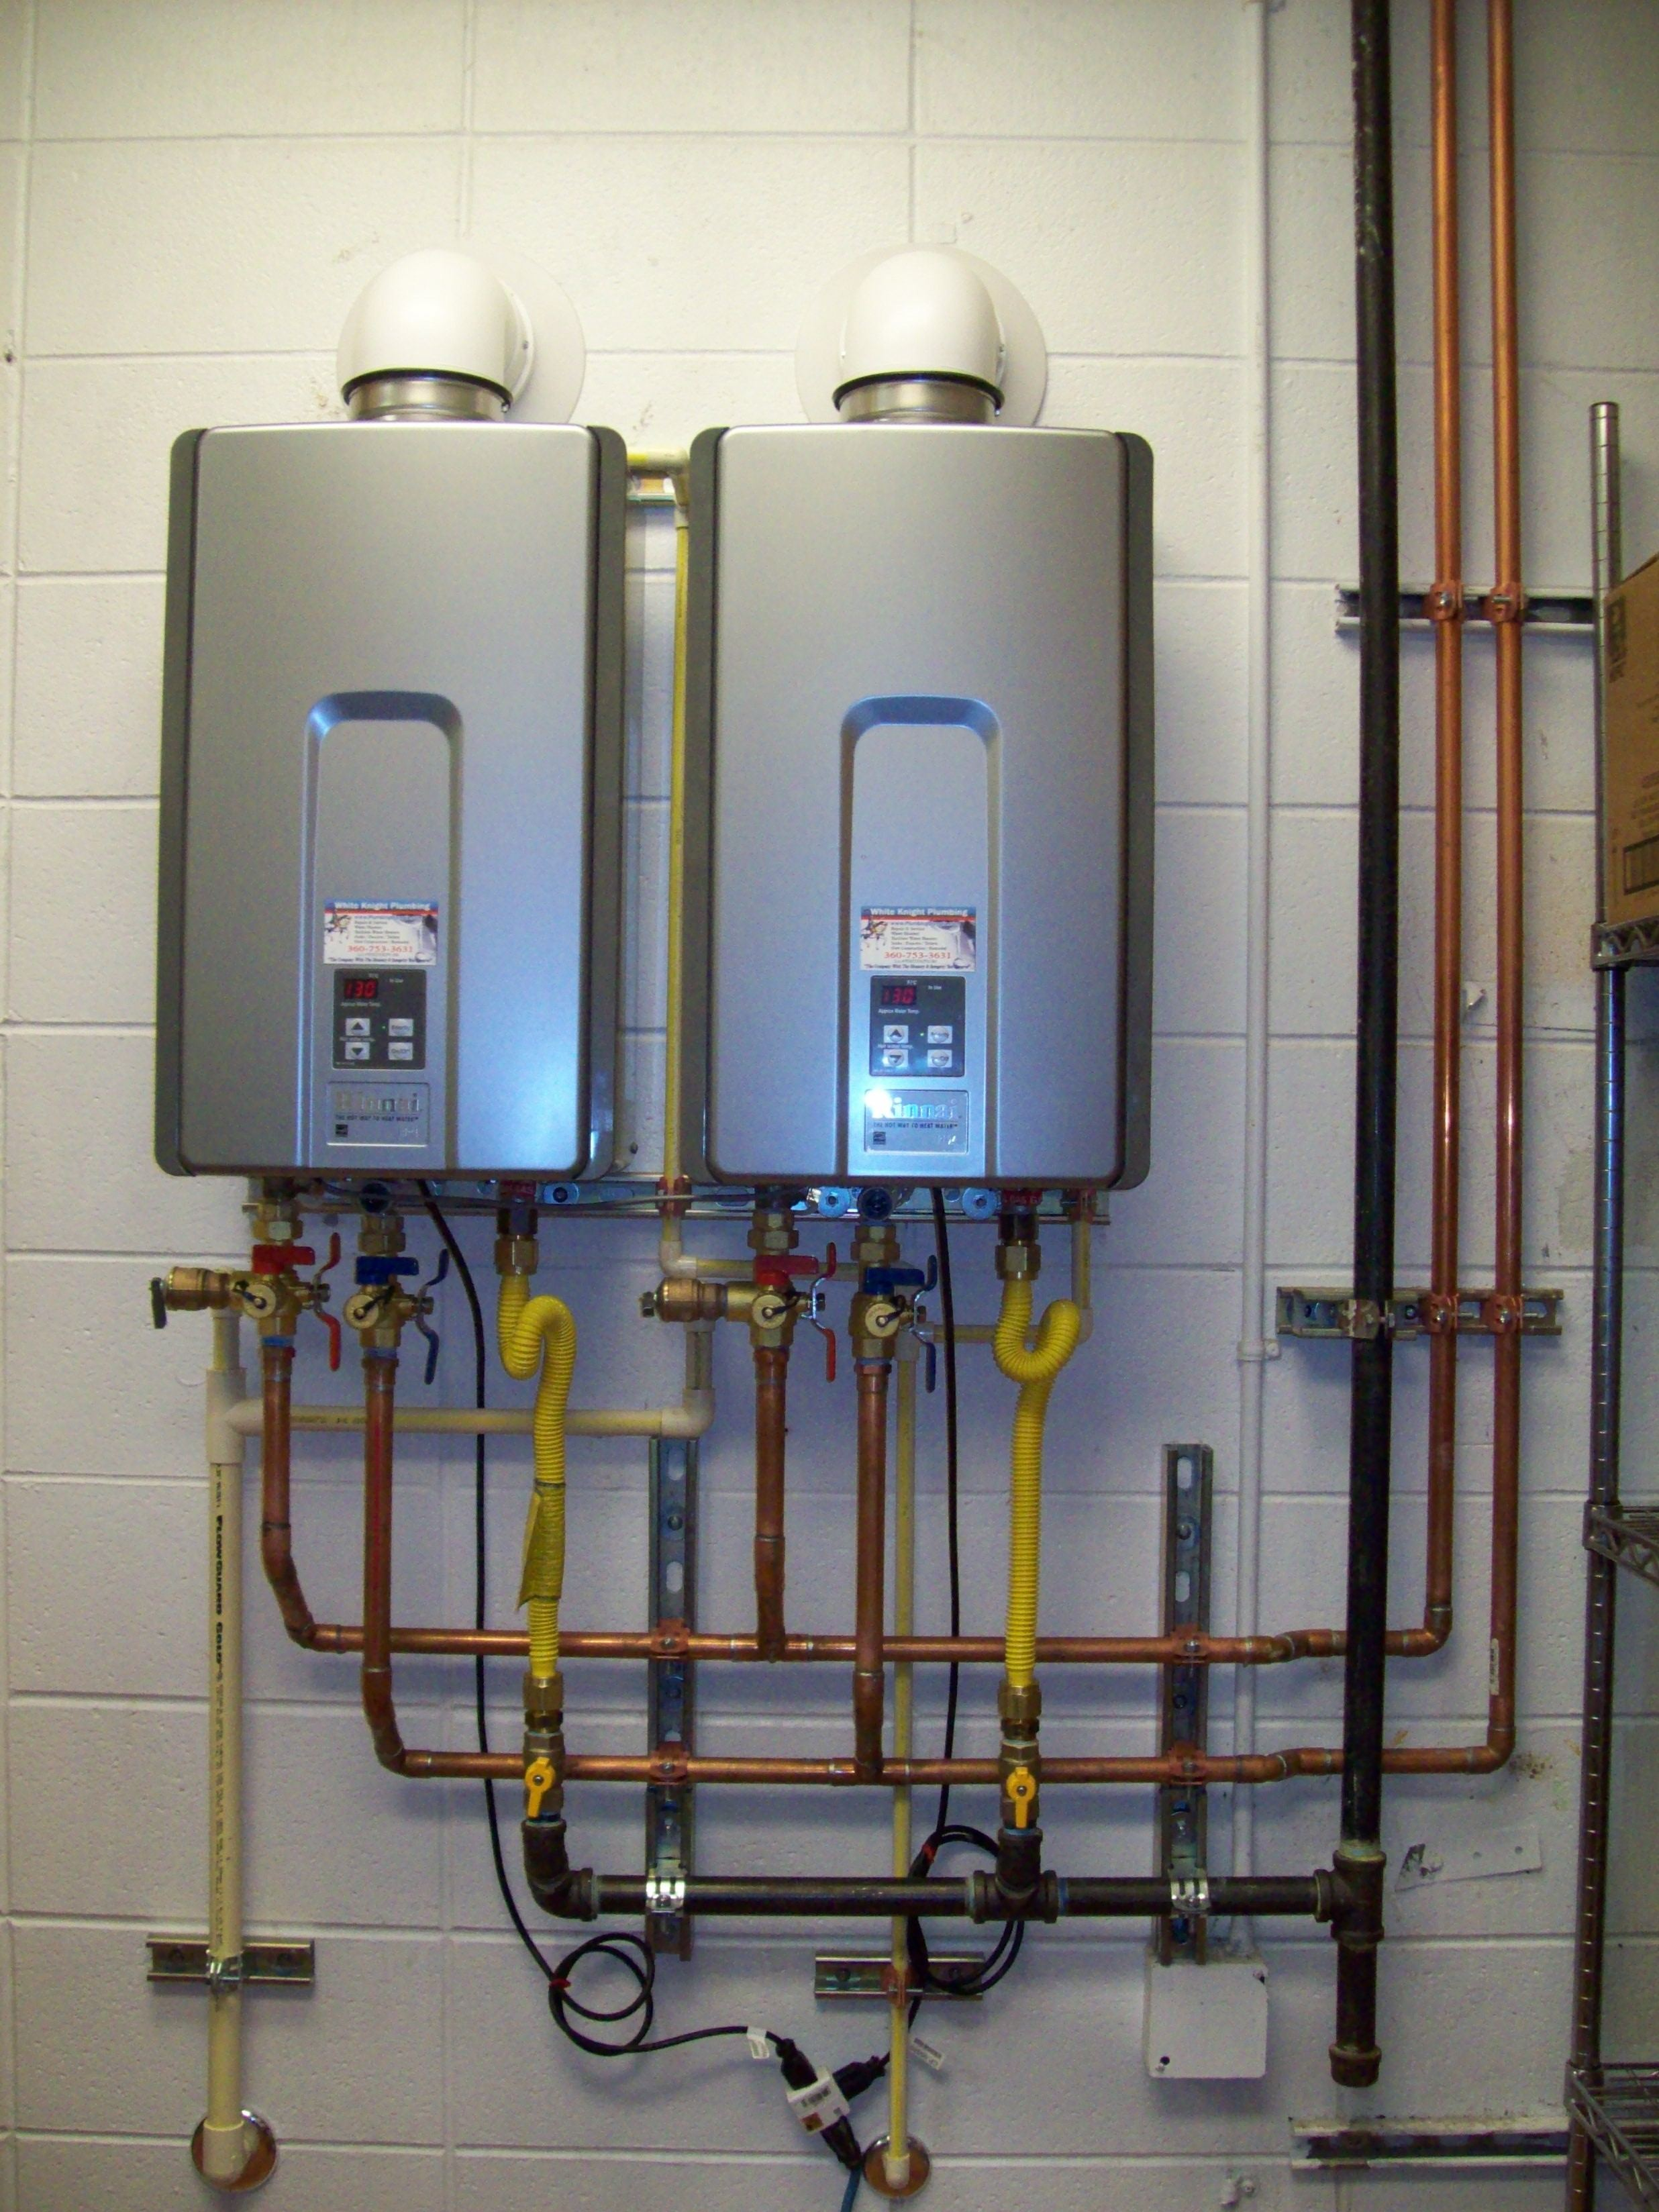 Wiring Diagram Tankless Water Heater : Things to know about tankless water heaters the green